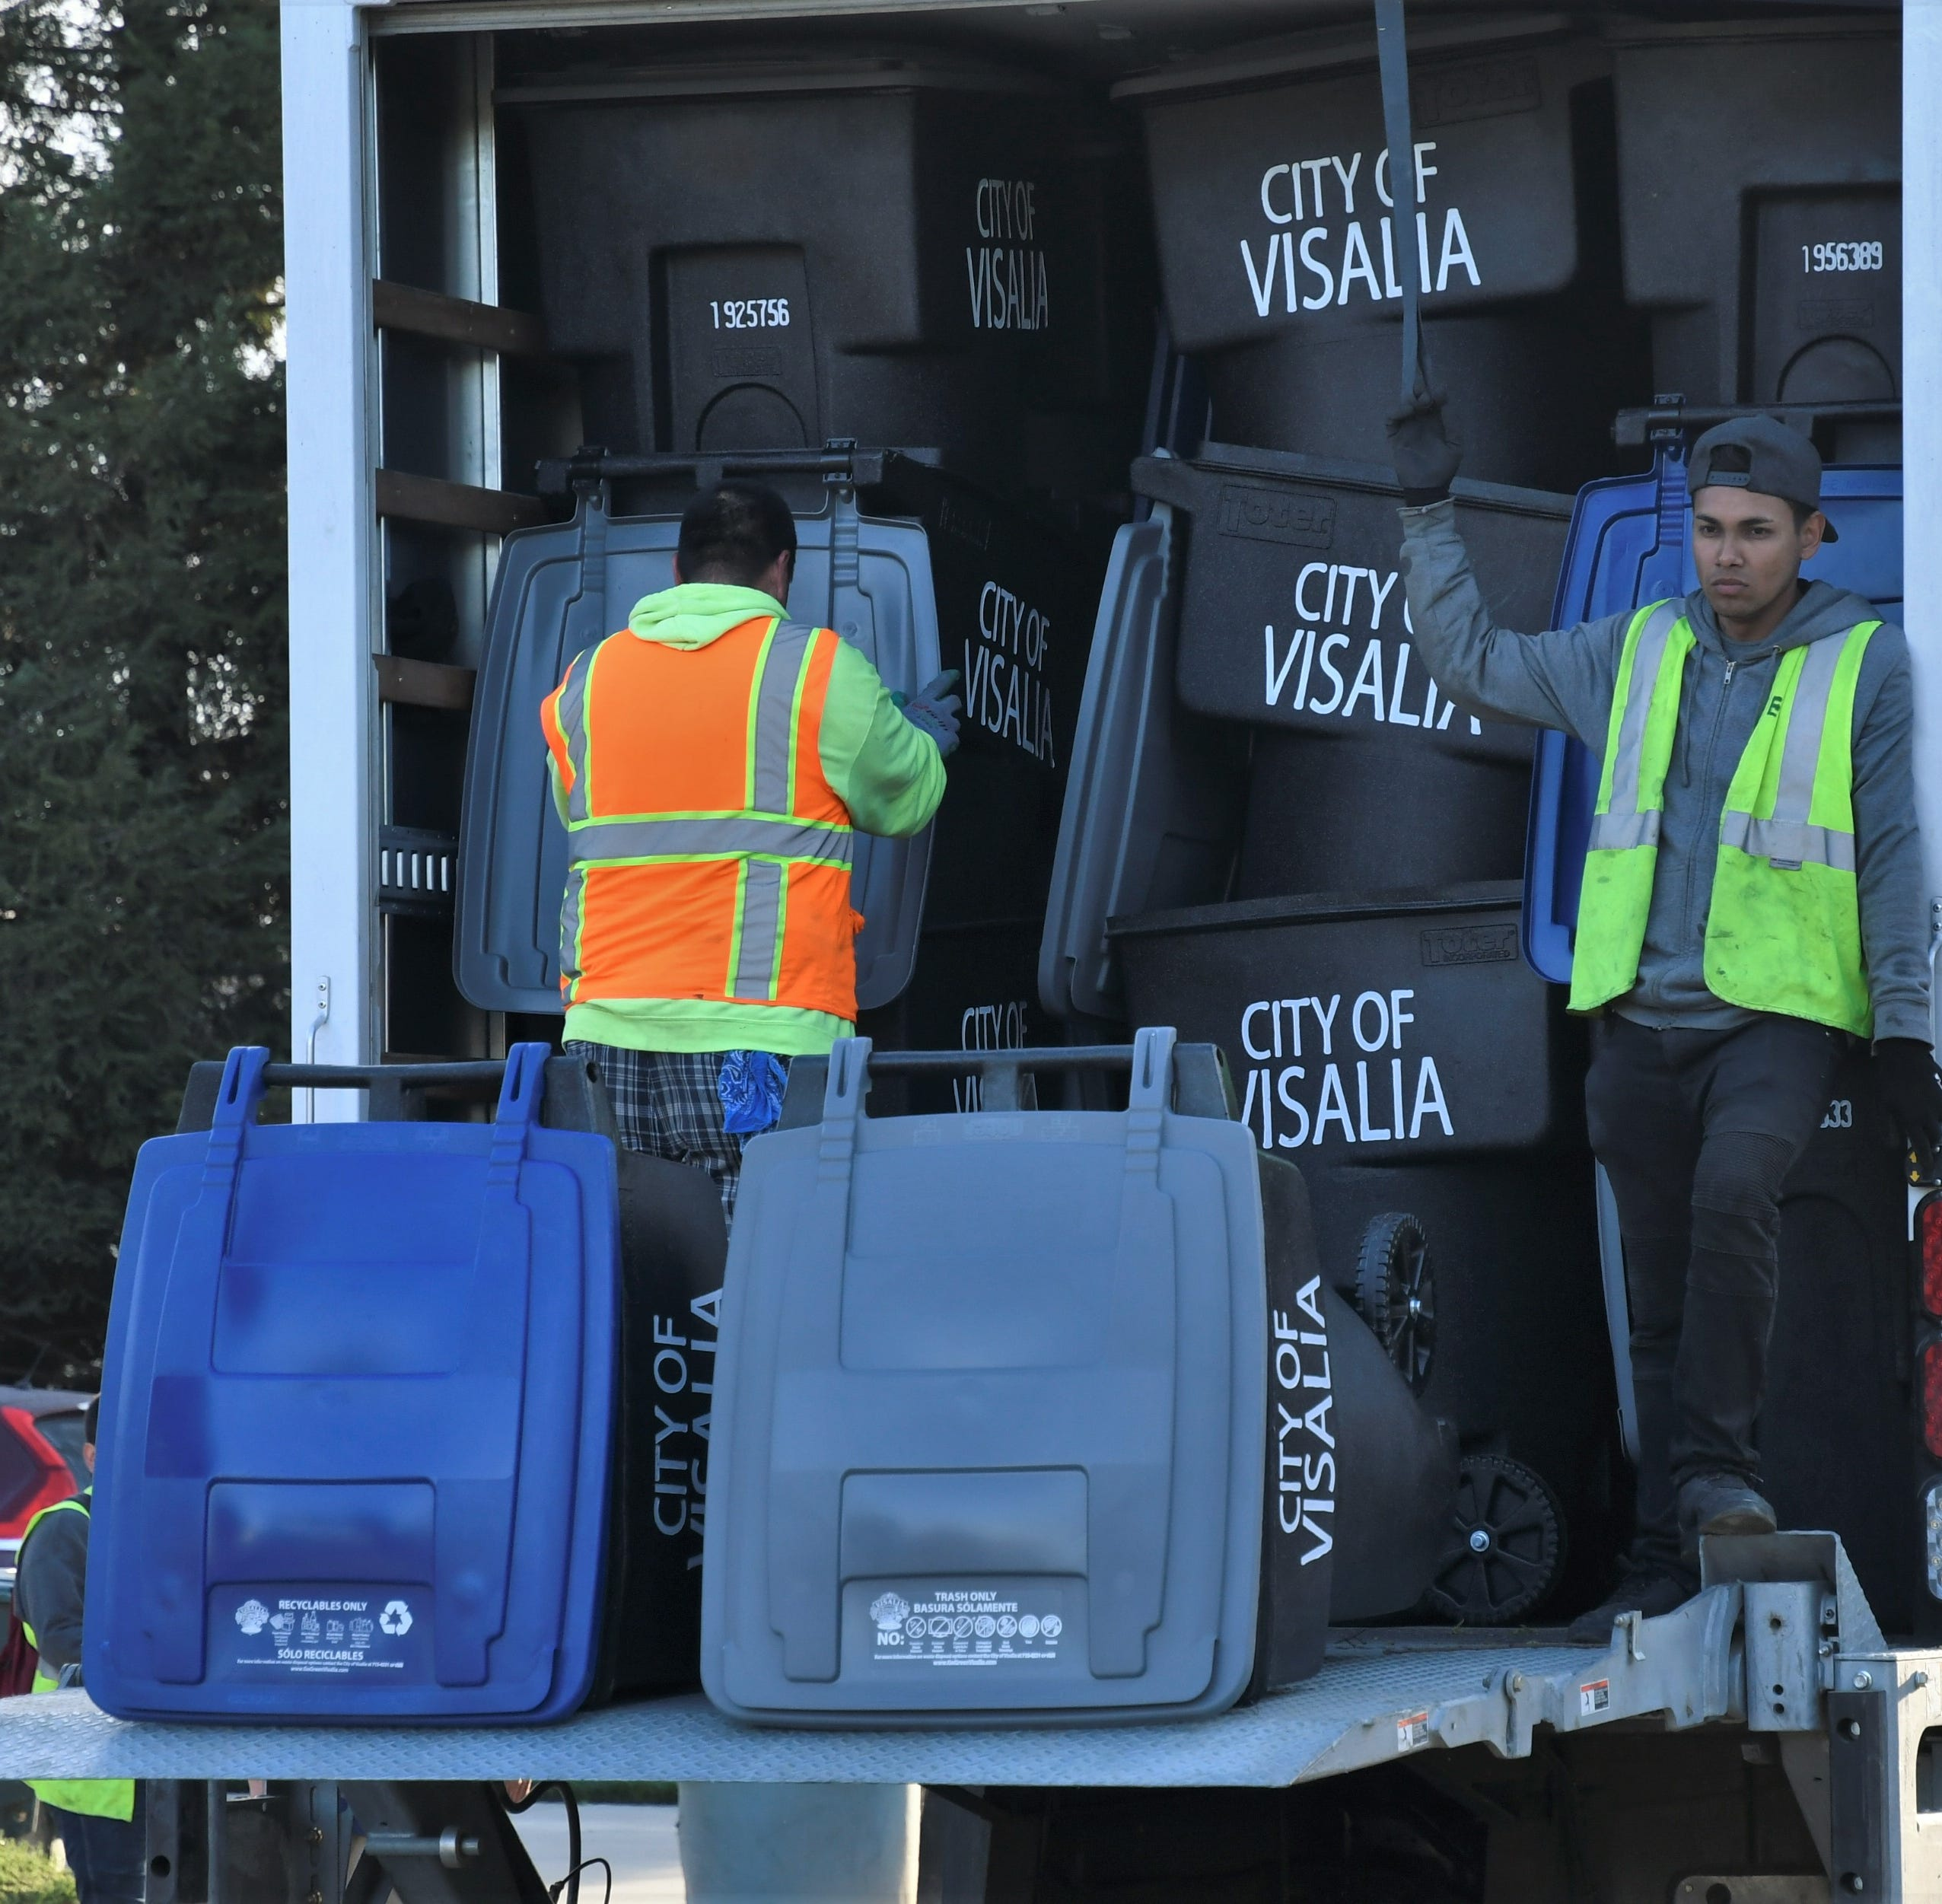 Visalia invented them, residents loathe them, split trash cans gone forever